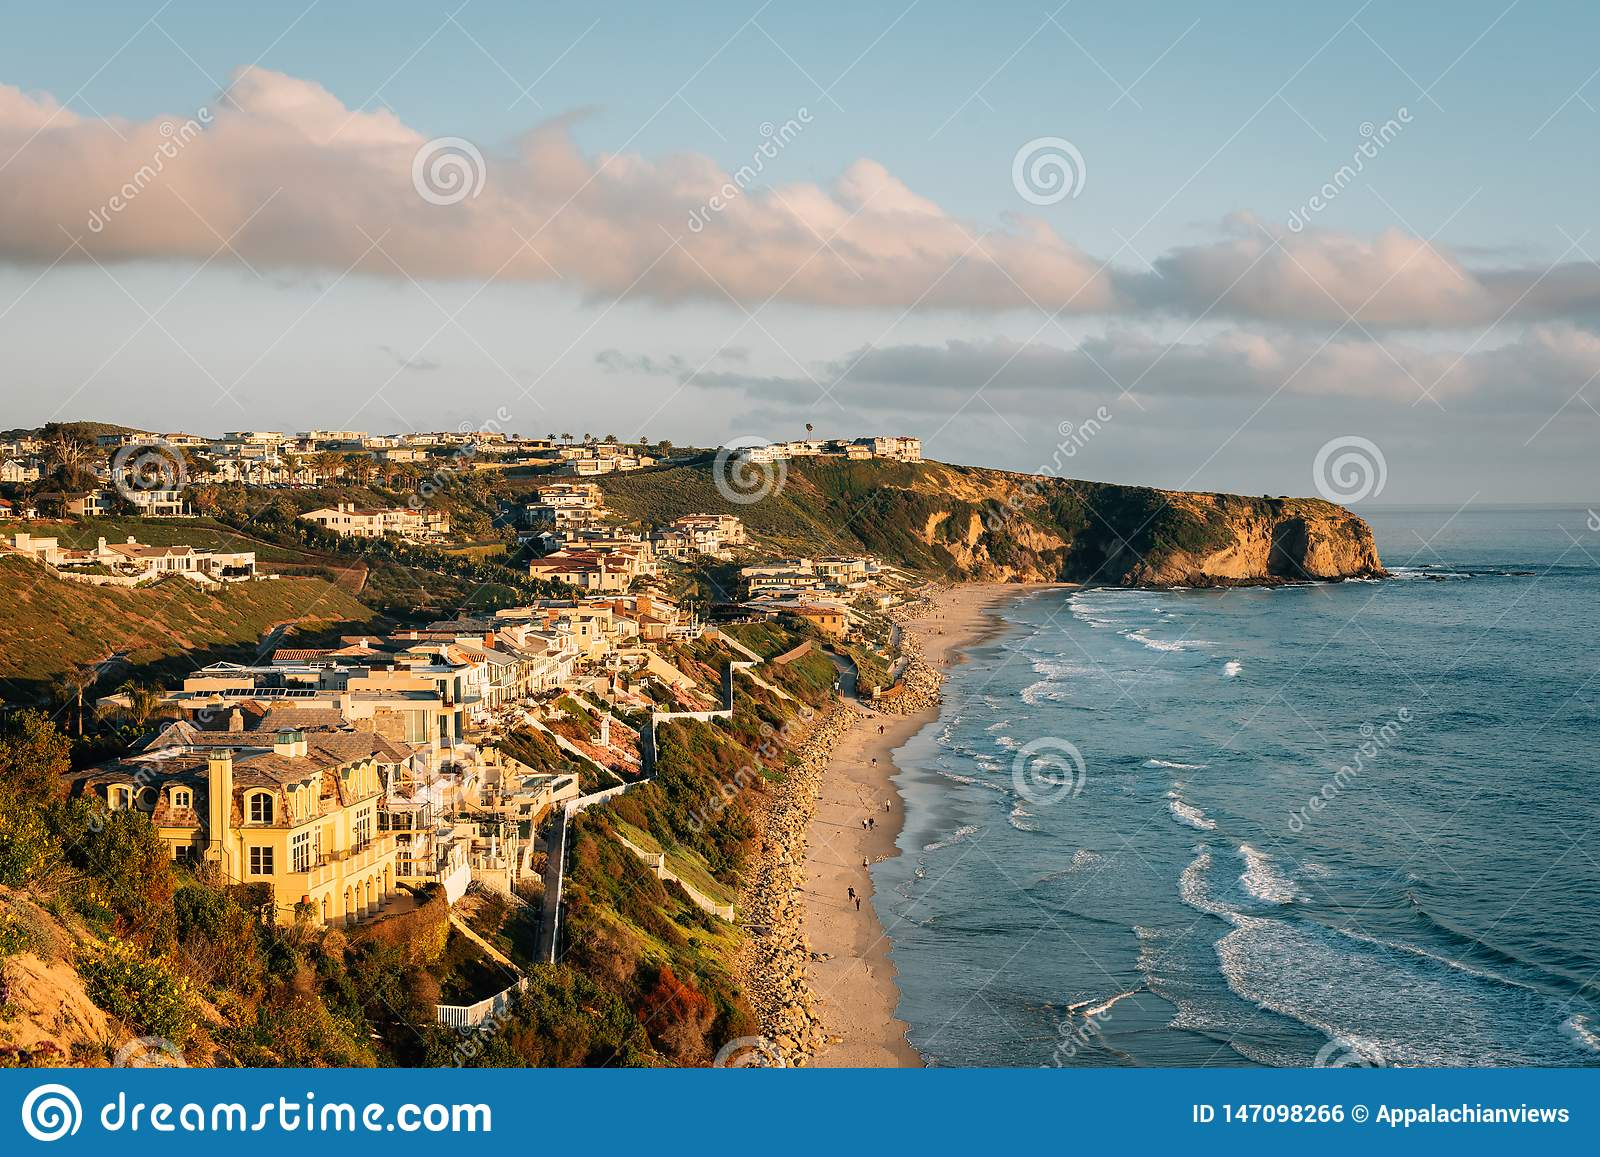 View of cliffs and Strand Beach, in Dana Point, Orange County, California